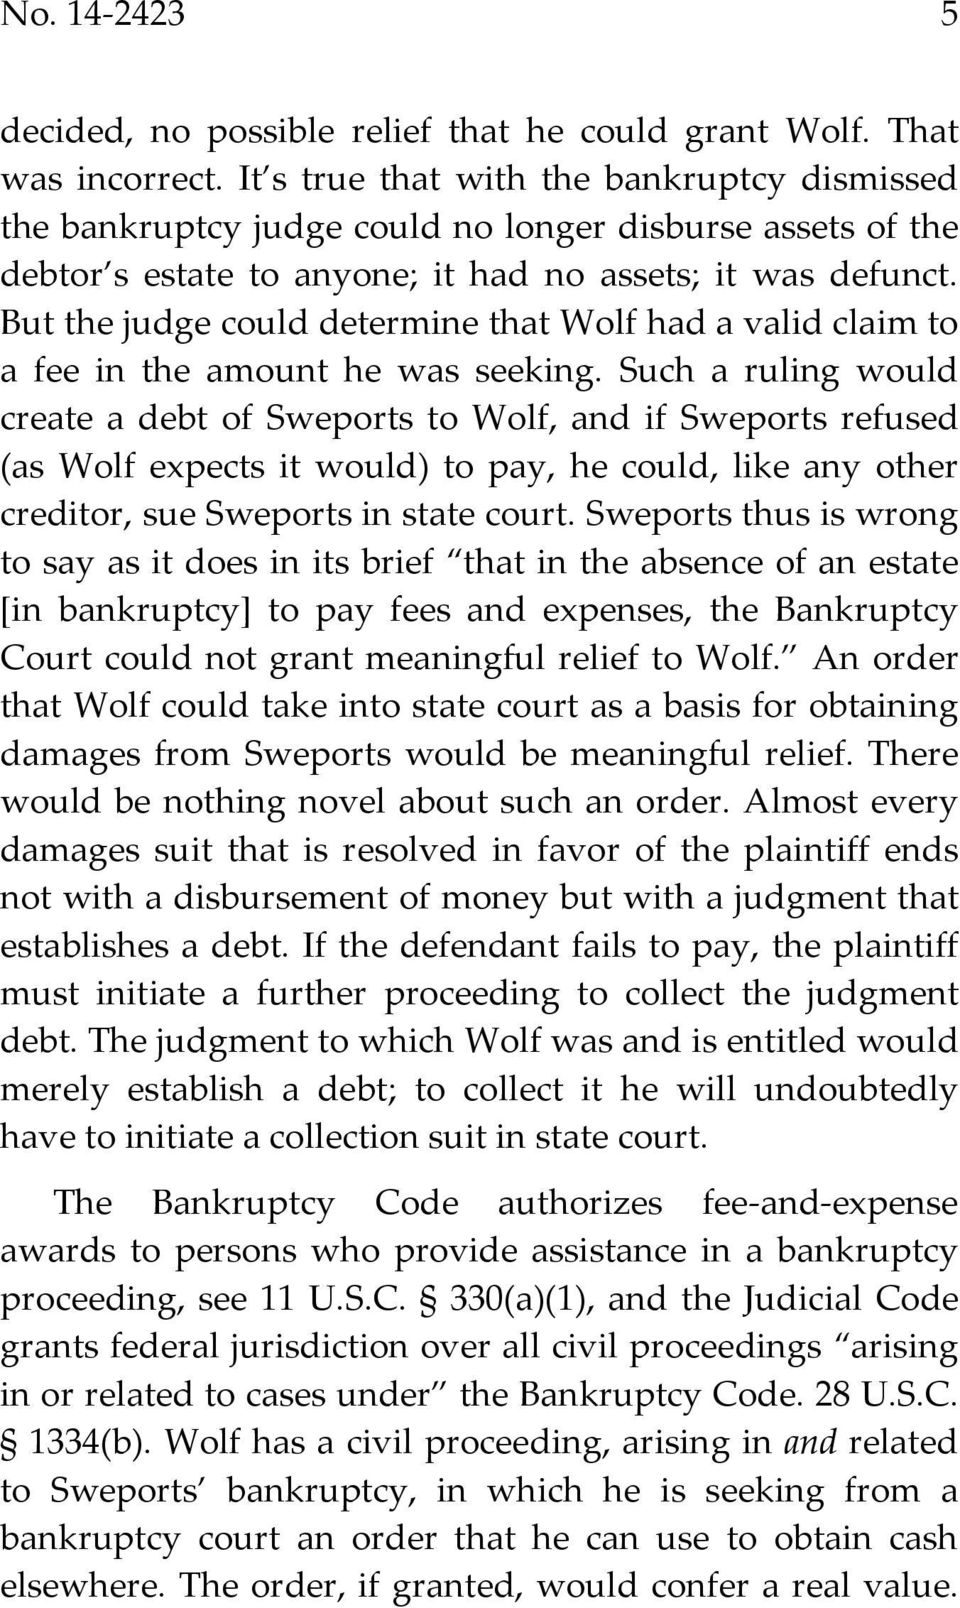 But the judge could determine that Wolf had a valid claim to a fee in the amount he was seeking.